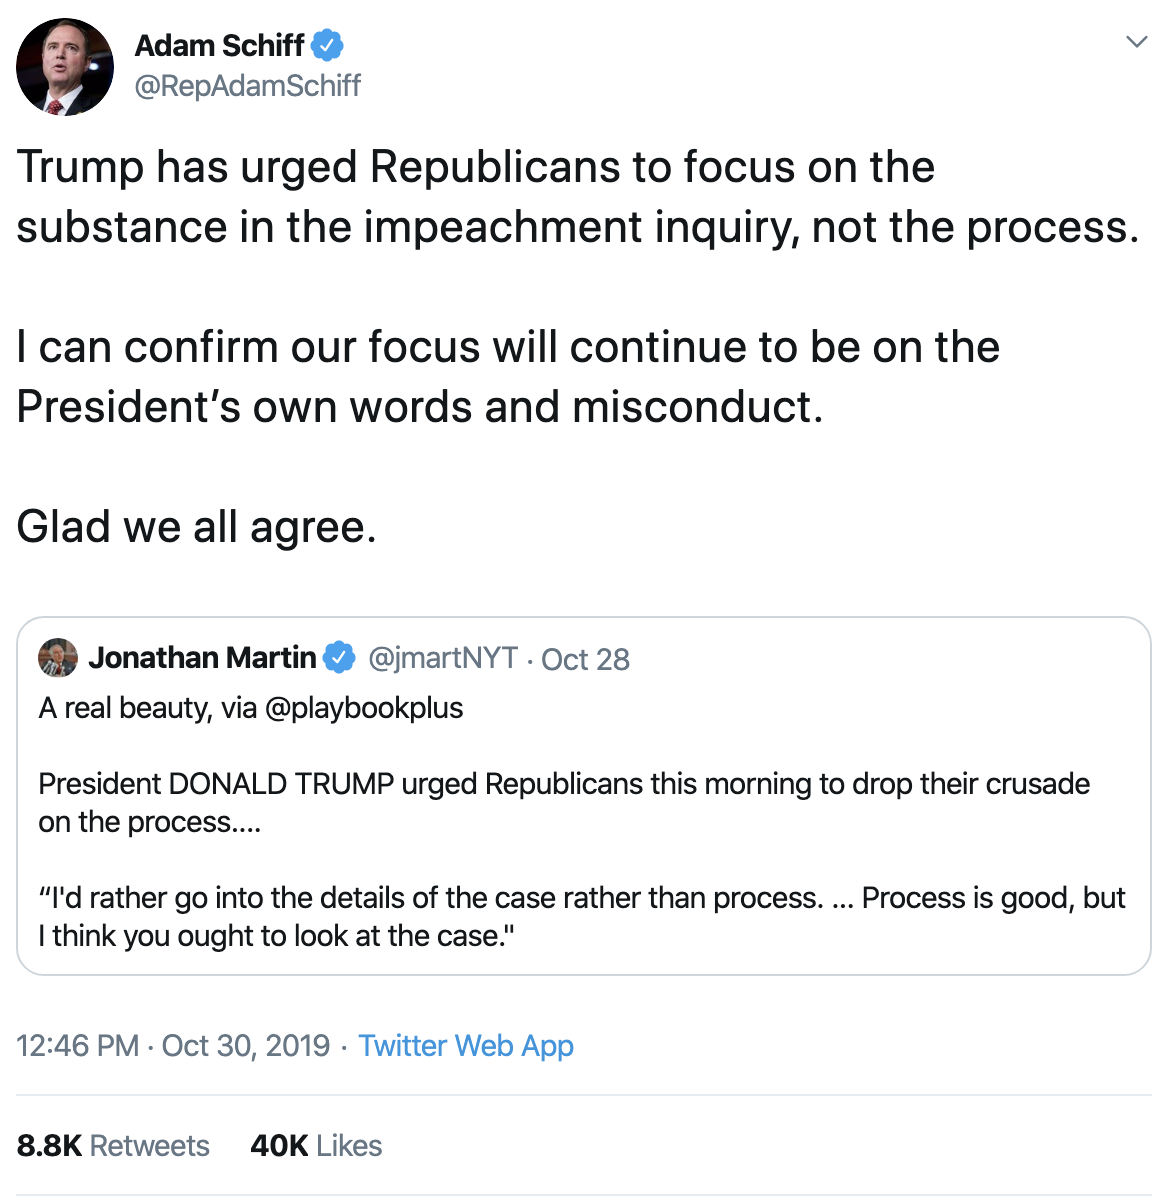 Screen-Shot-2019-10-31-at-8.47.08-AM Schiff Checkmates Trump With Incriminating Tweet Using Donald's Own Words Corruption Crime Domestic Policy Donald Trump Election 2016 Election 2020 Featured Foreign Policy Immigration Impeachment Military National Security Politics Top Stories Twitter War